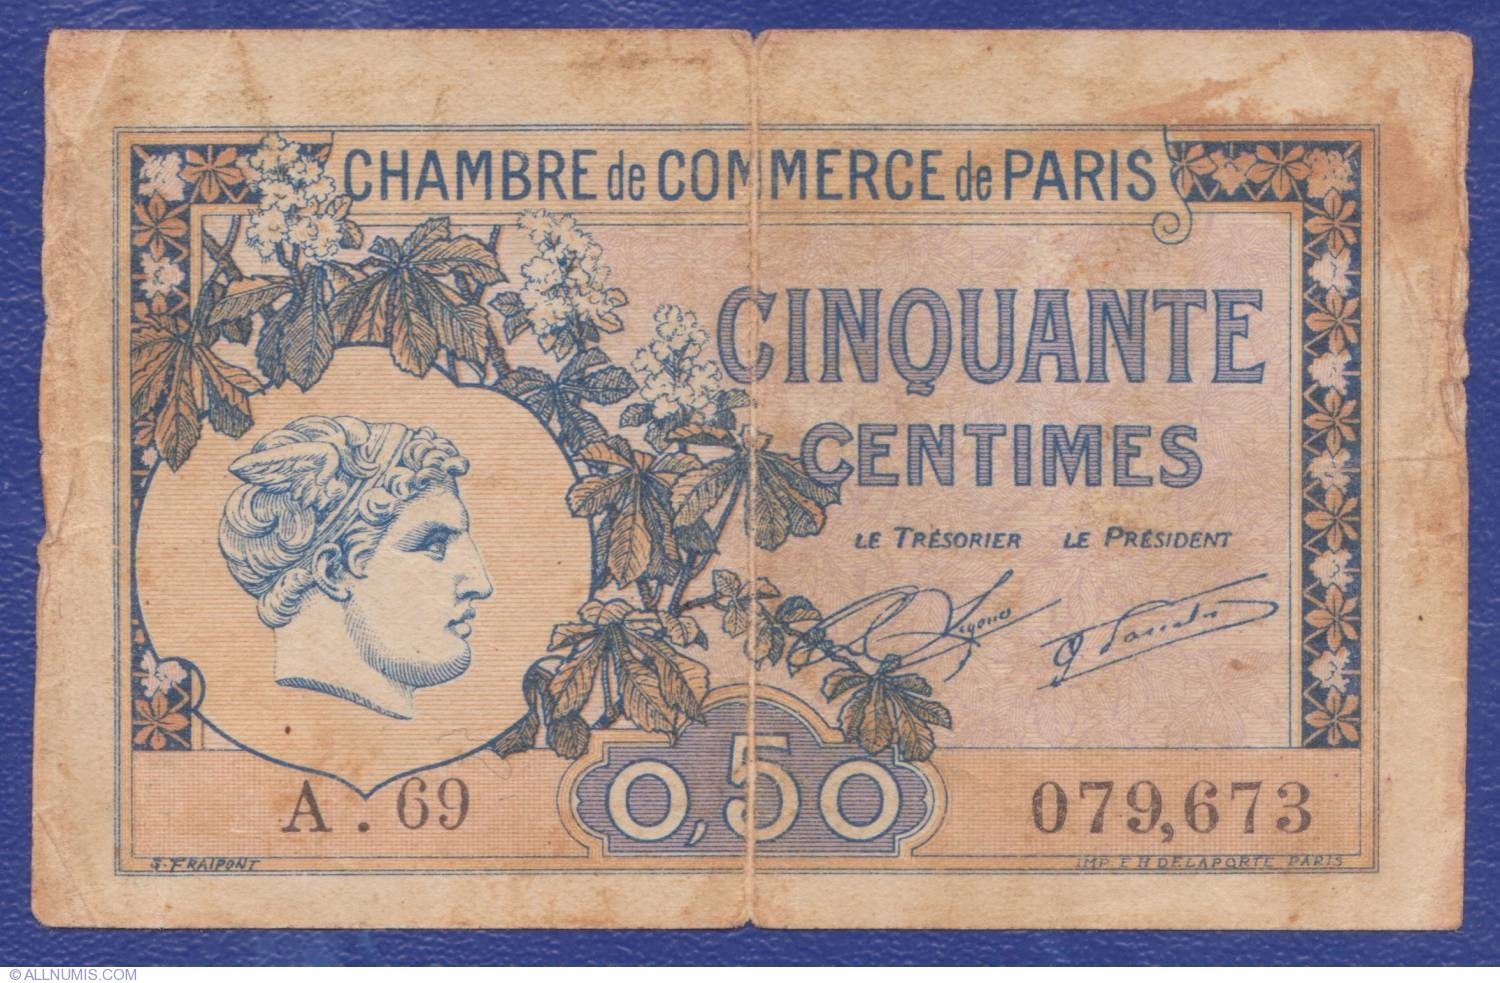 Chambre De Commerce De Paris 50 Centimes 1920 Paris Chambre De Commerce France